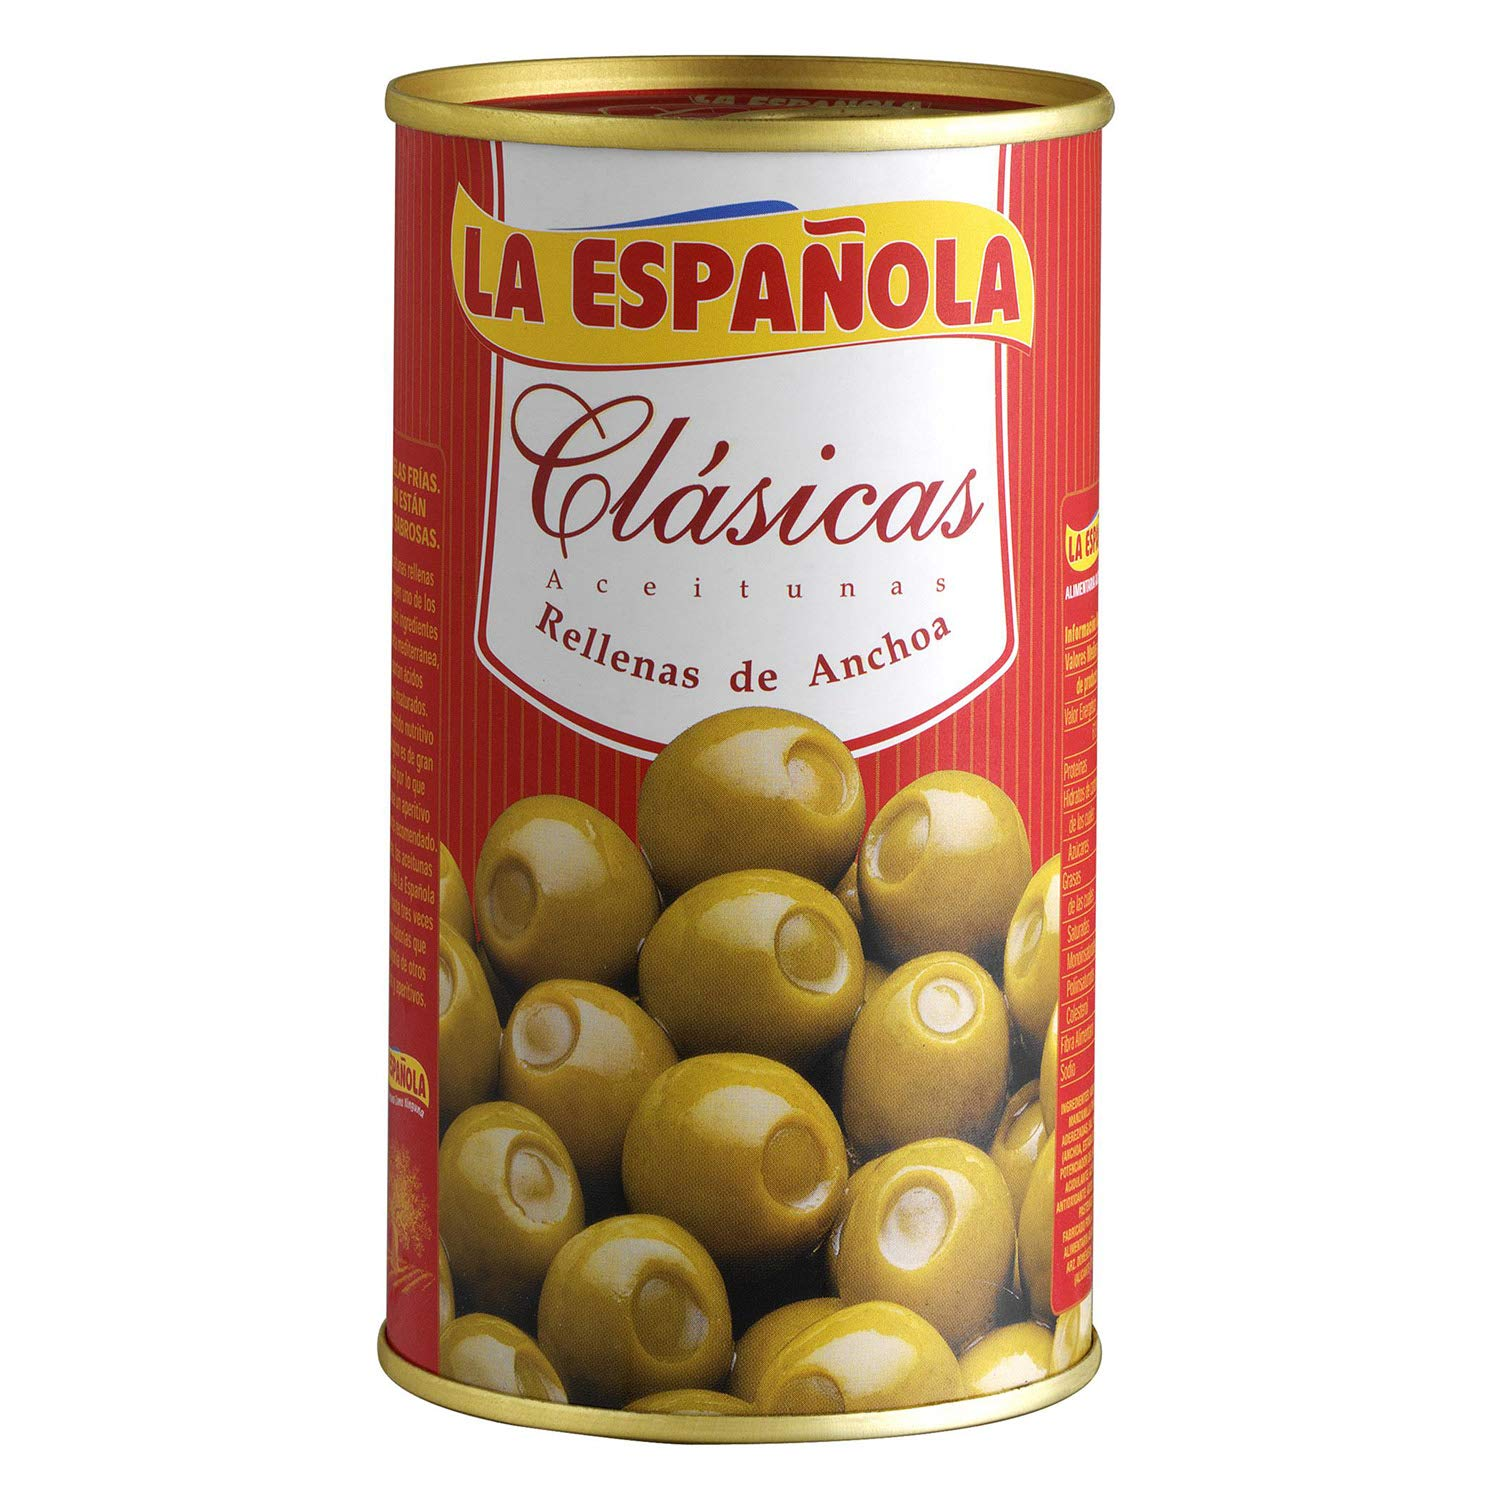 Classic Green Olives Stuffed with Anchovies by La Espanola - 12.3 oz( 350 g)